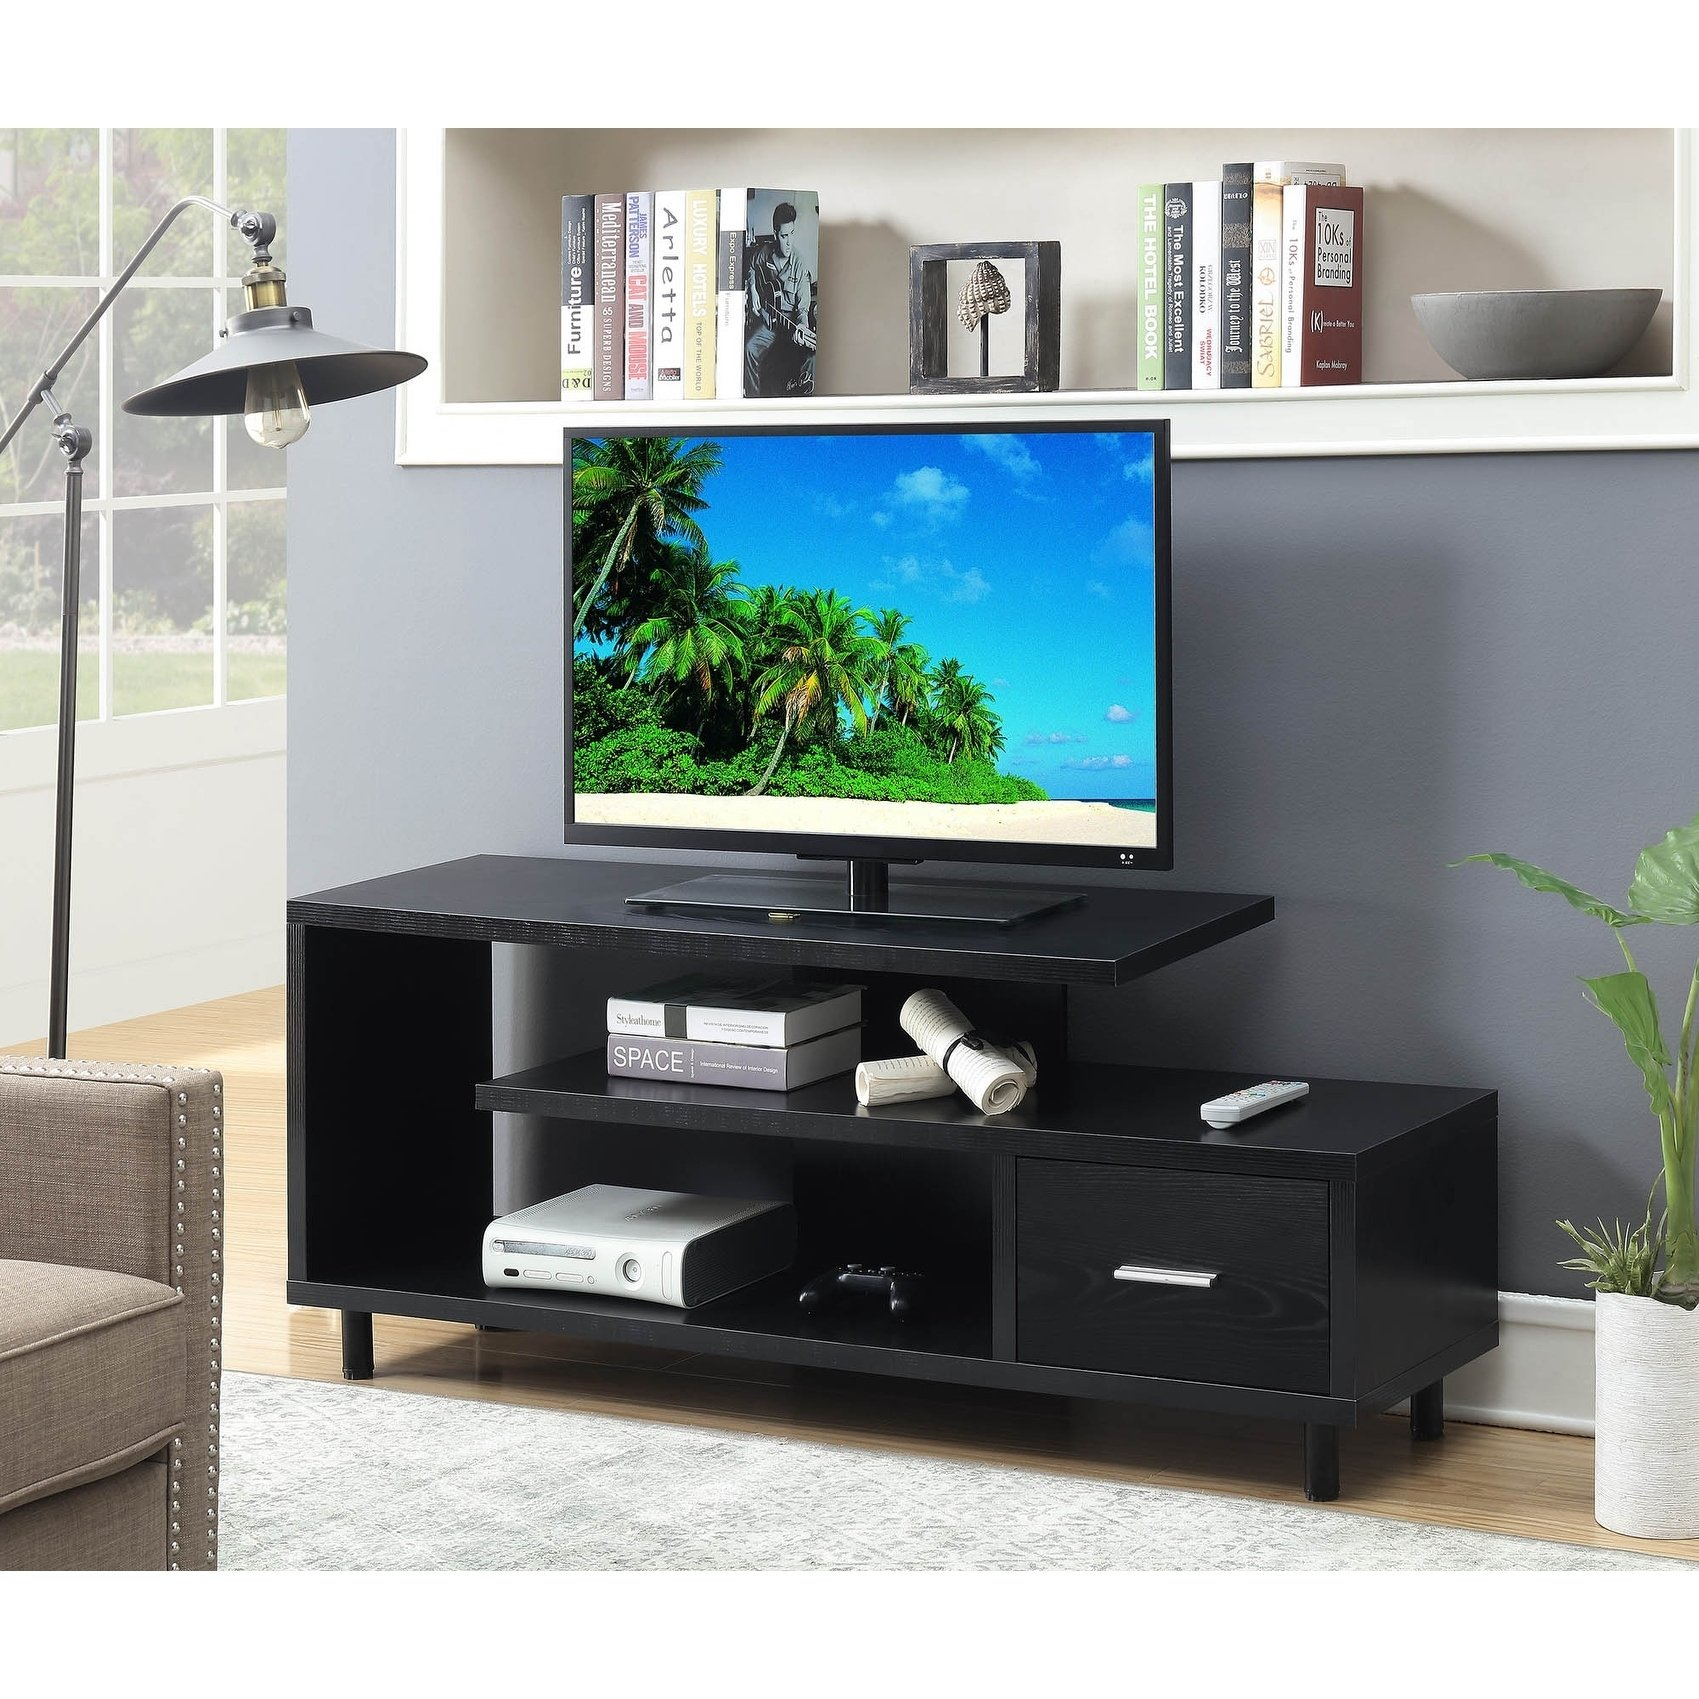 Buy Black, 42 - 60 Inches Tv Stands & Entertainment Centers Online with Canyon 64 Inch Tv Stands (Image 4 of 30)